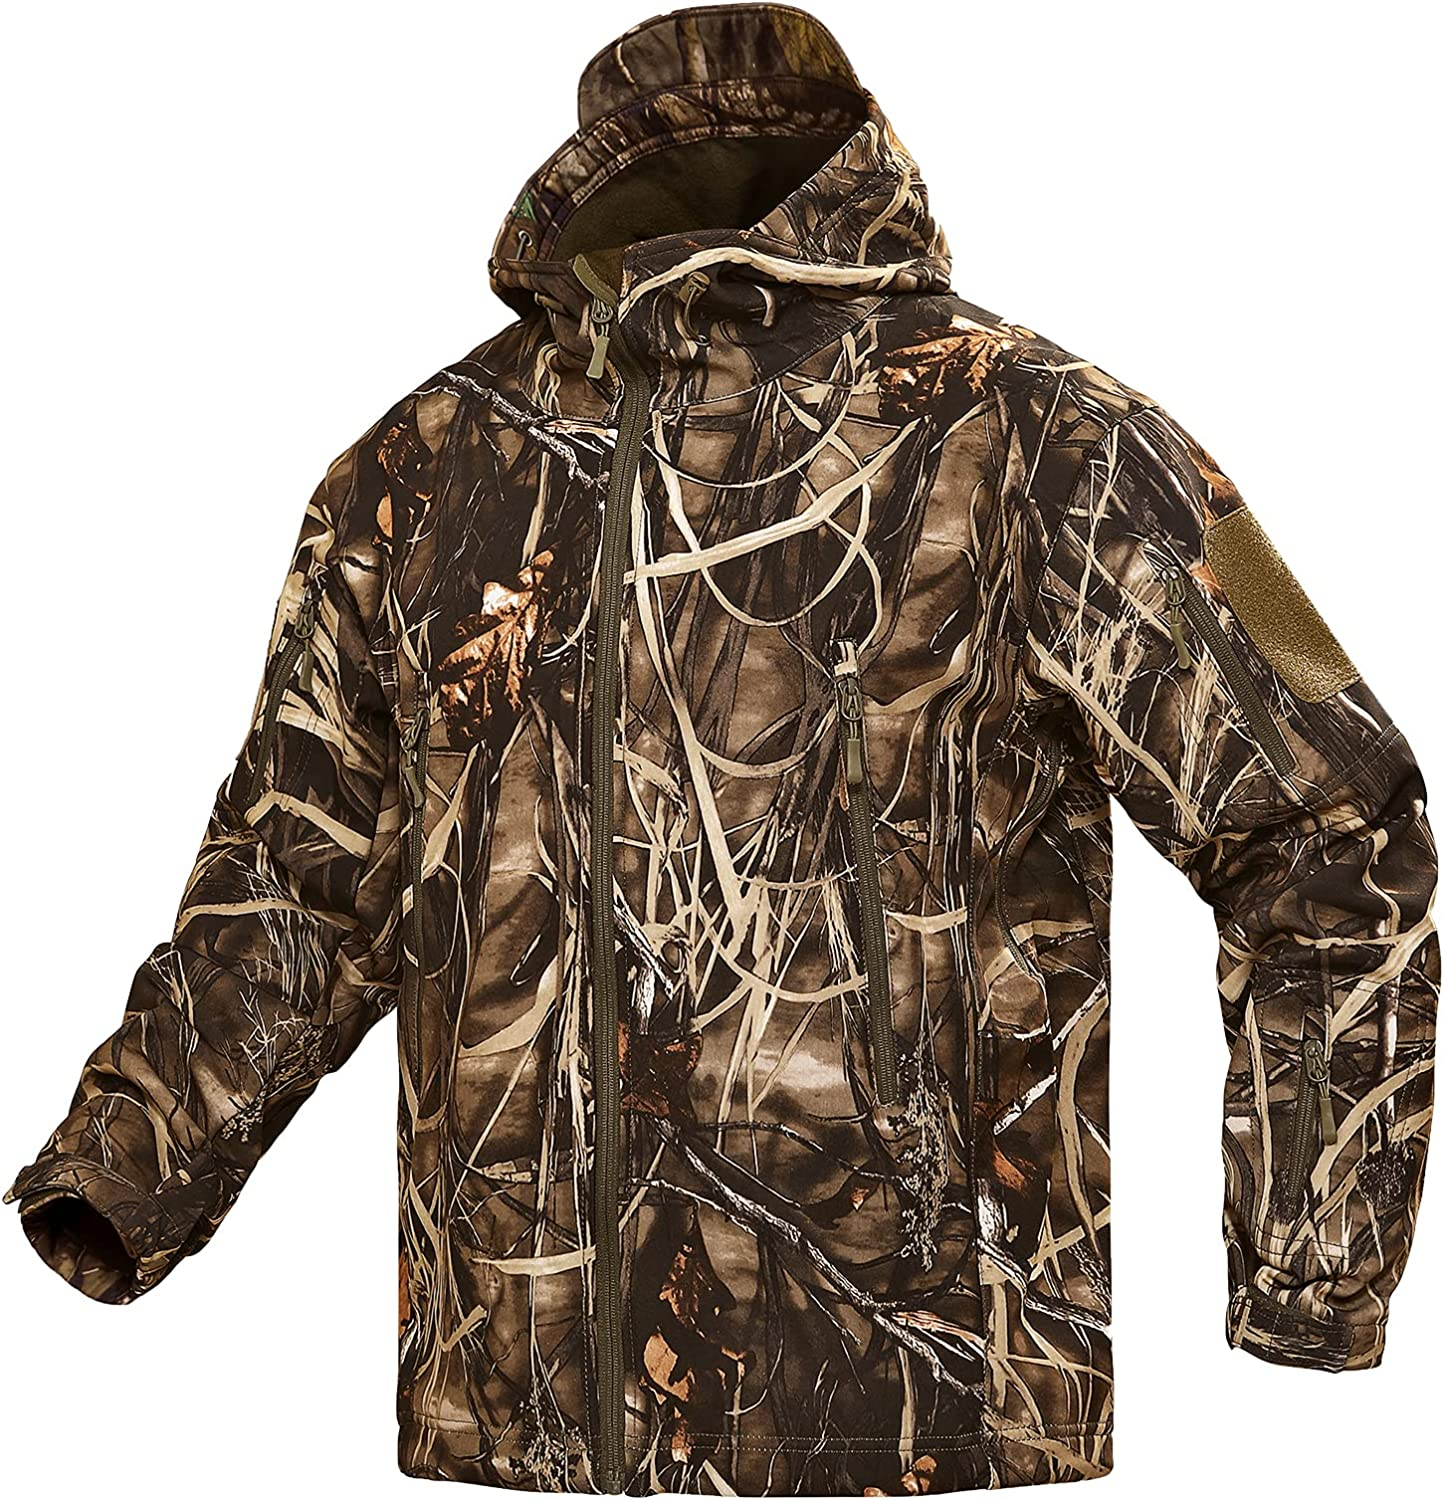 YEVHEV Hunting Jacket for Free Shipping Cheap Bargain Gift Soldering Men Clothing Camouflage Hoodie